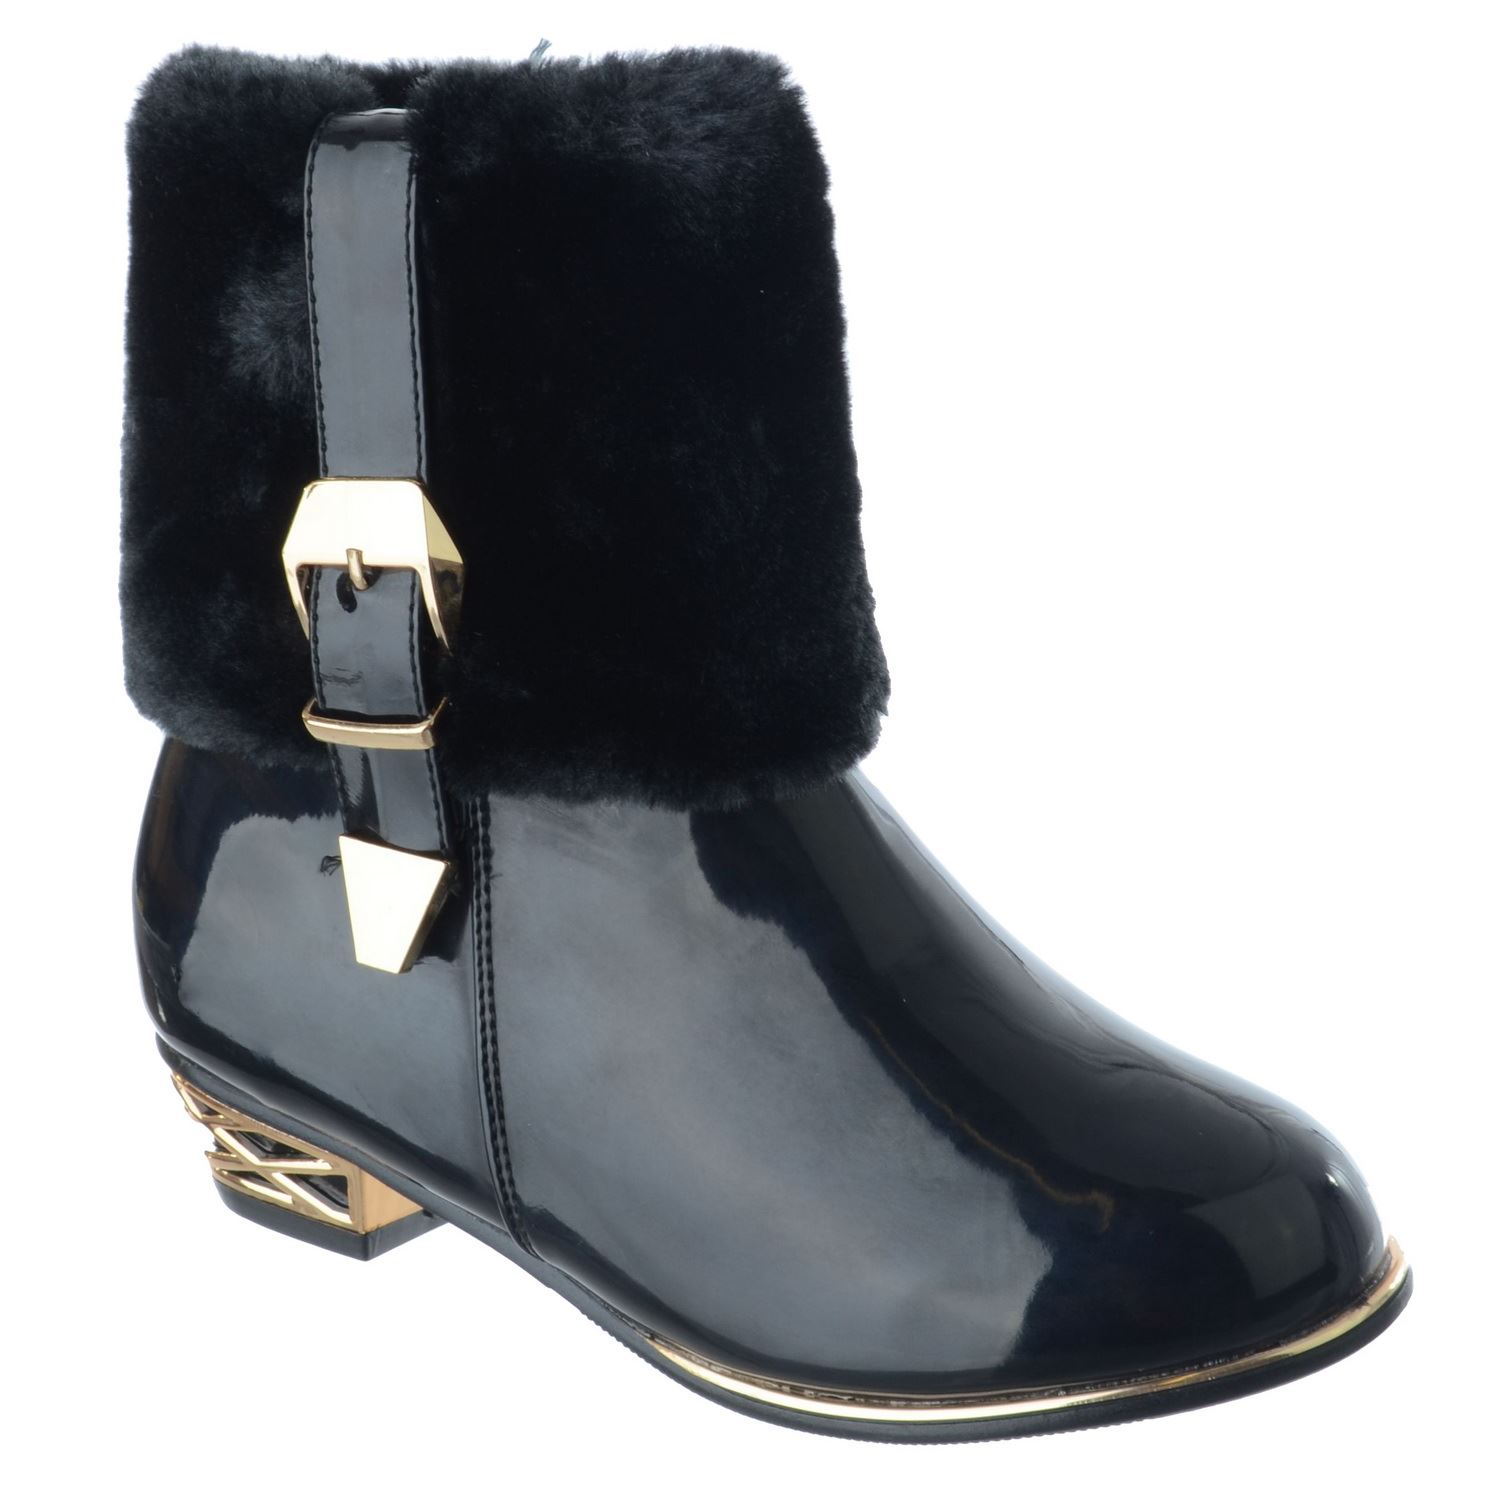 GIRLS KIDS WINTER WARM FUR LINED FUR LINED FANCY PARTY ANKLE BOOTS SHOES SIZE